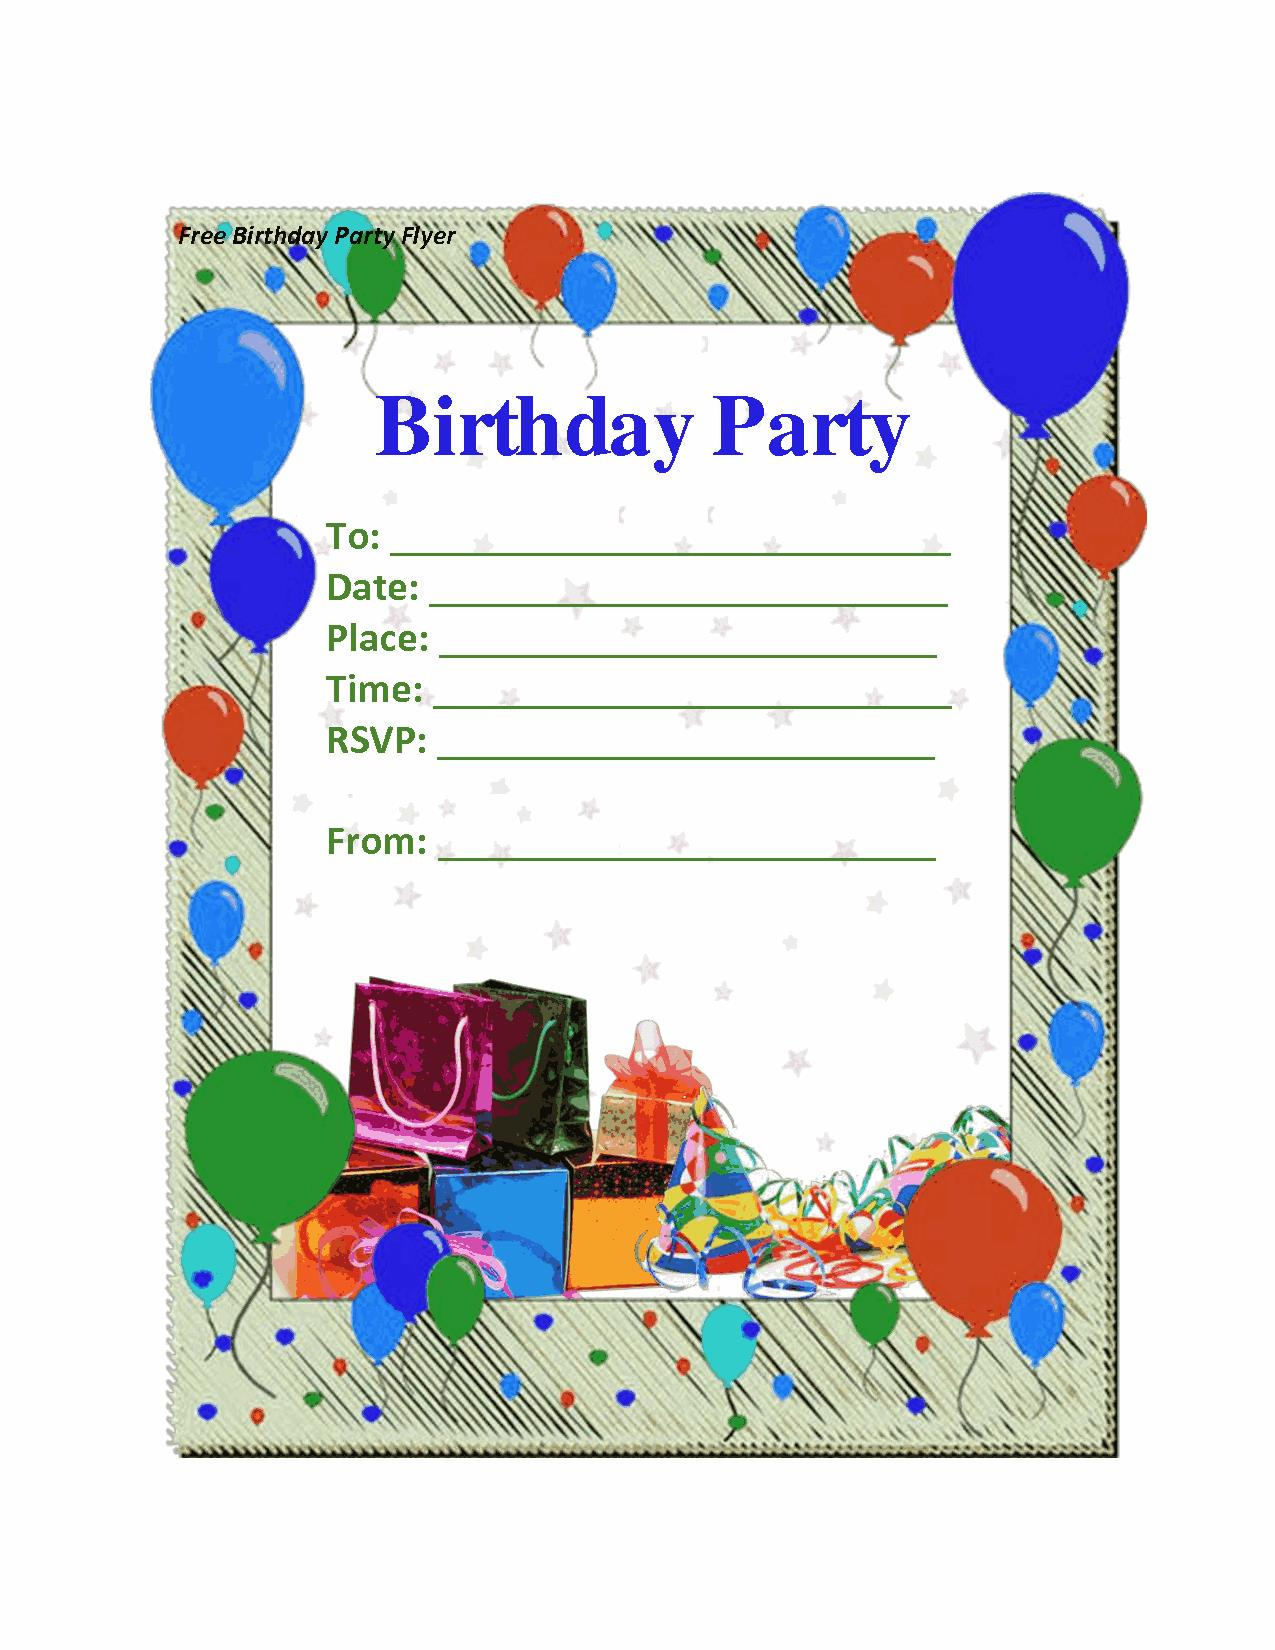 10th birthday party invitation templates ; 10Th-Birthday-Party-Invitations-combined-with-your-creativity-will-make-this-looks-awesome-17